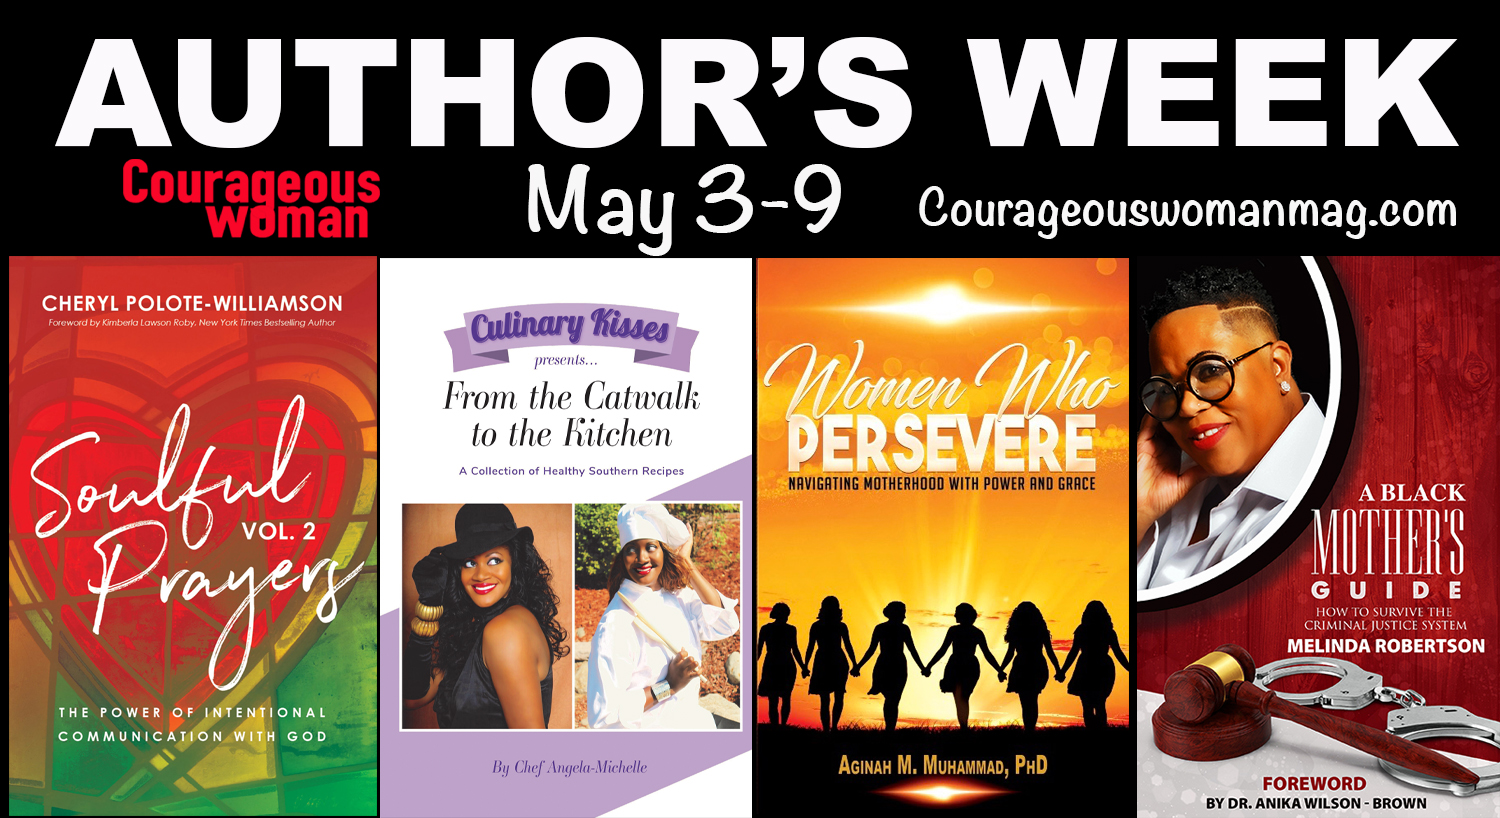 Courageous Woman Magazine -Authors Week-Dee Bowden-Chef Angela Michelle-Dr. Aginah Muhammad phd - Melinda Robertson